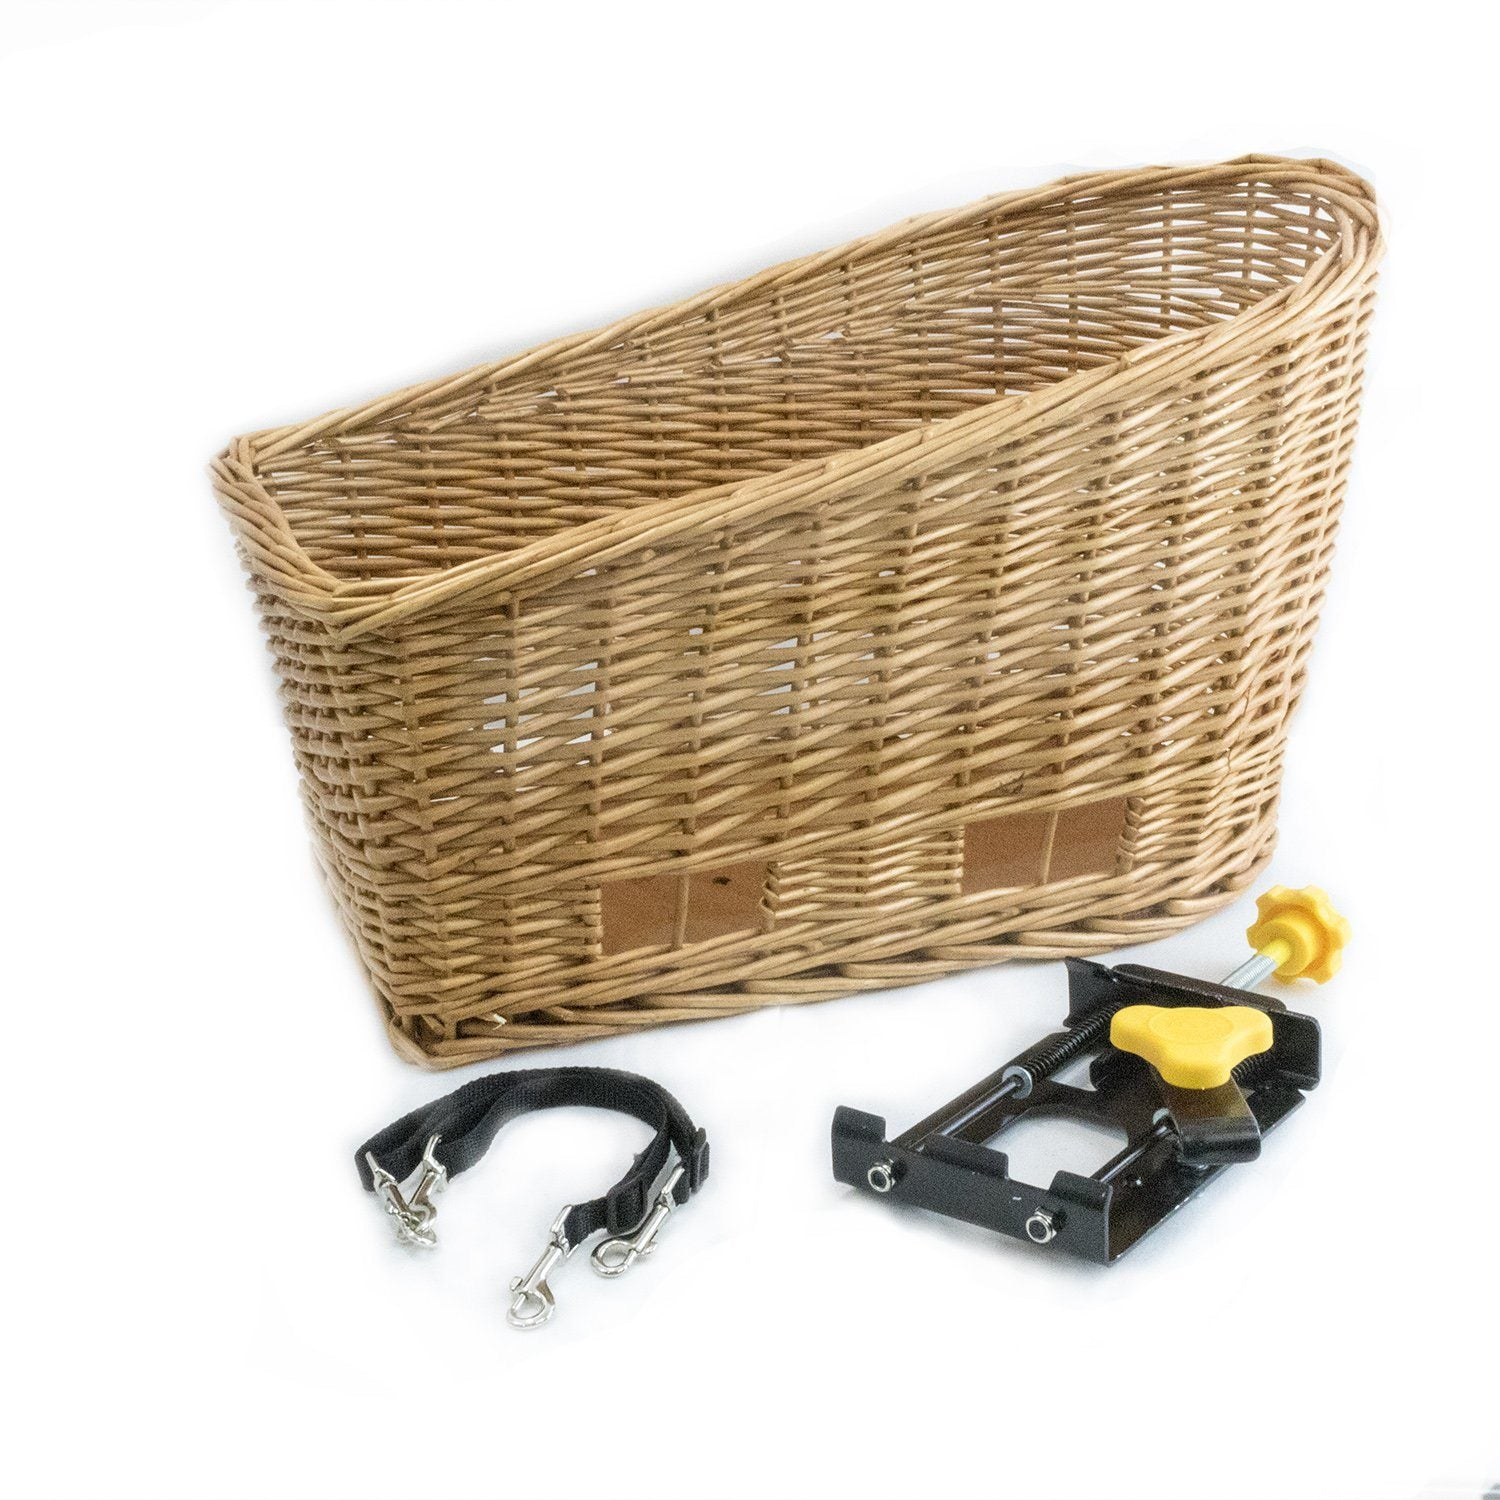 Cape May Rear Mount Bike Basket (Natural) - Beach & Dog Co.